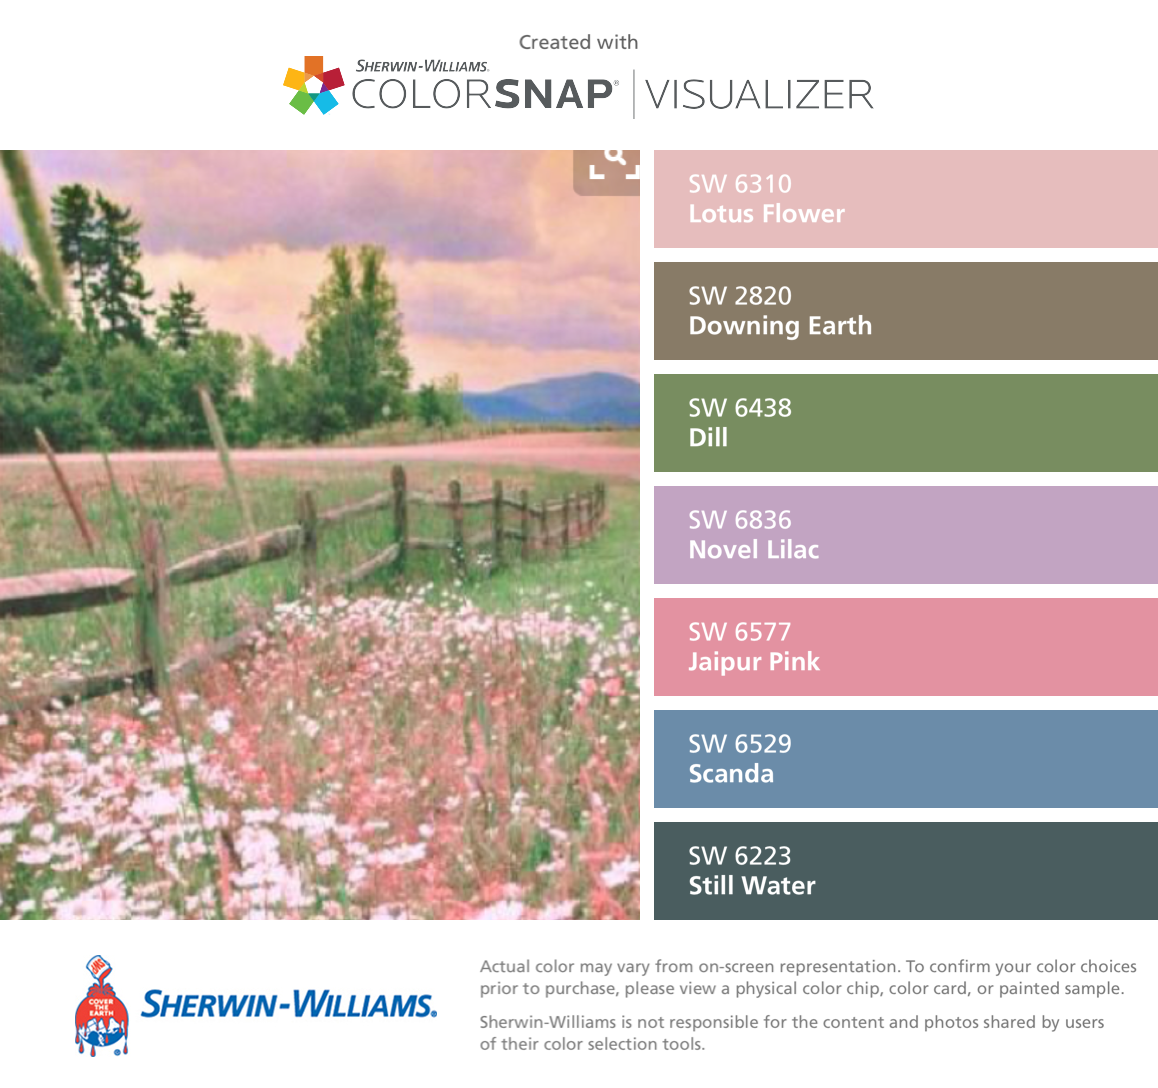 I found these colors with colorsnap visualizer for iphone by i found these colors with colorsnap visualizer for iphone by sherwin williams lotus flower sw 6310 downing earth sw 2820 dill sw 6438 izmirmasajfo